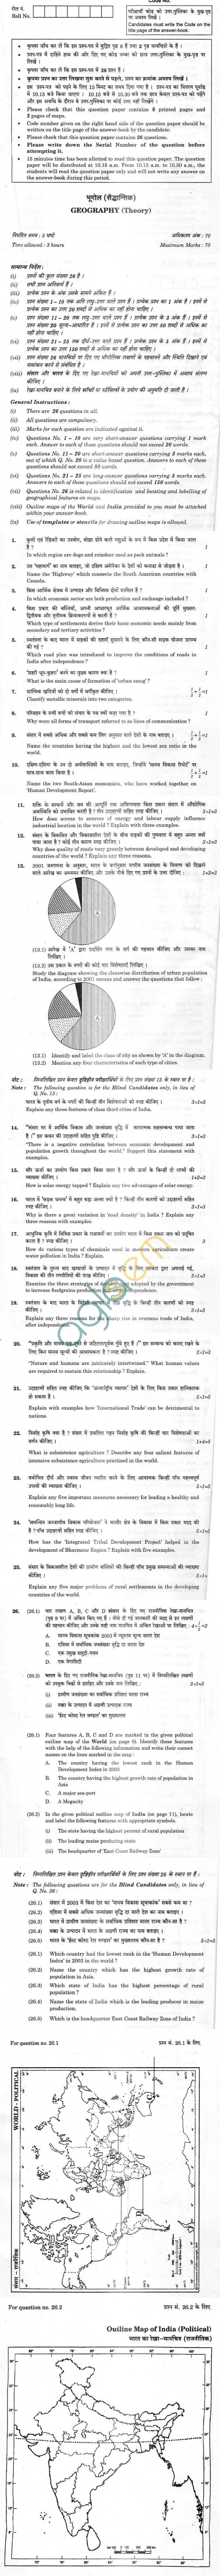 CBSE Compartment Exam 2013 Class XII Question Paper - Geography